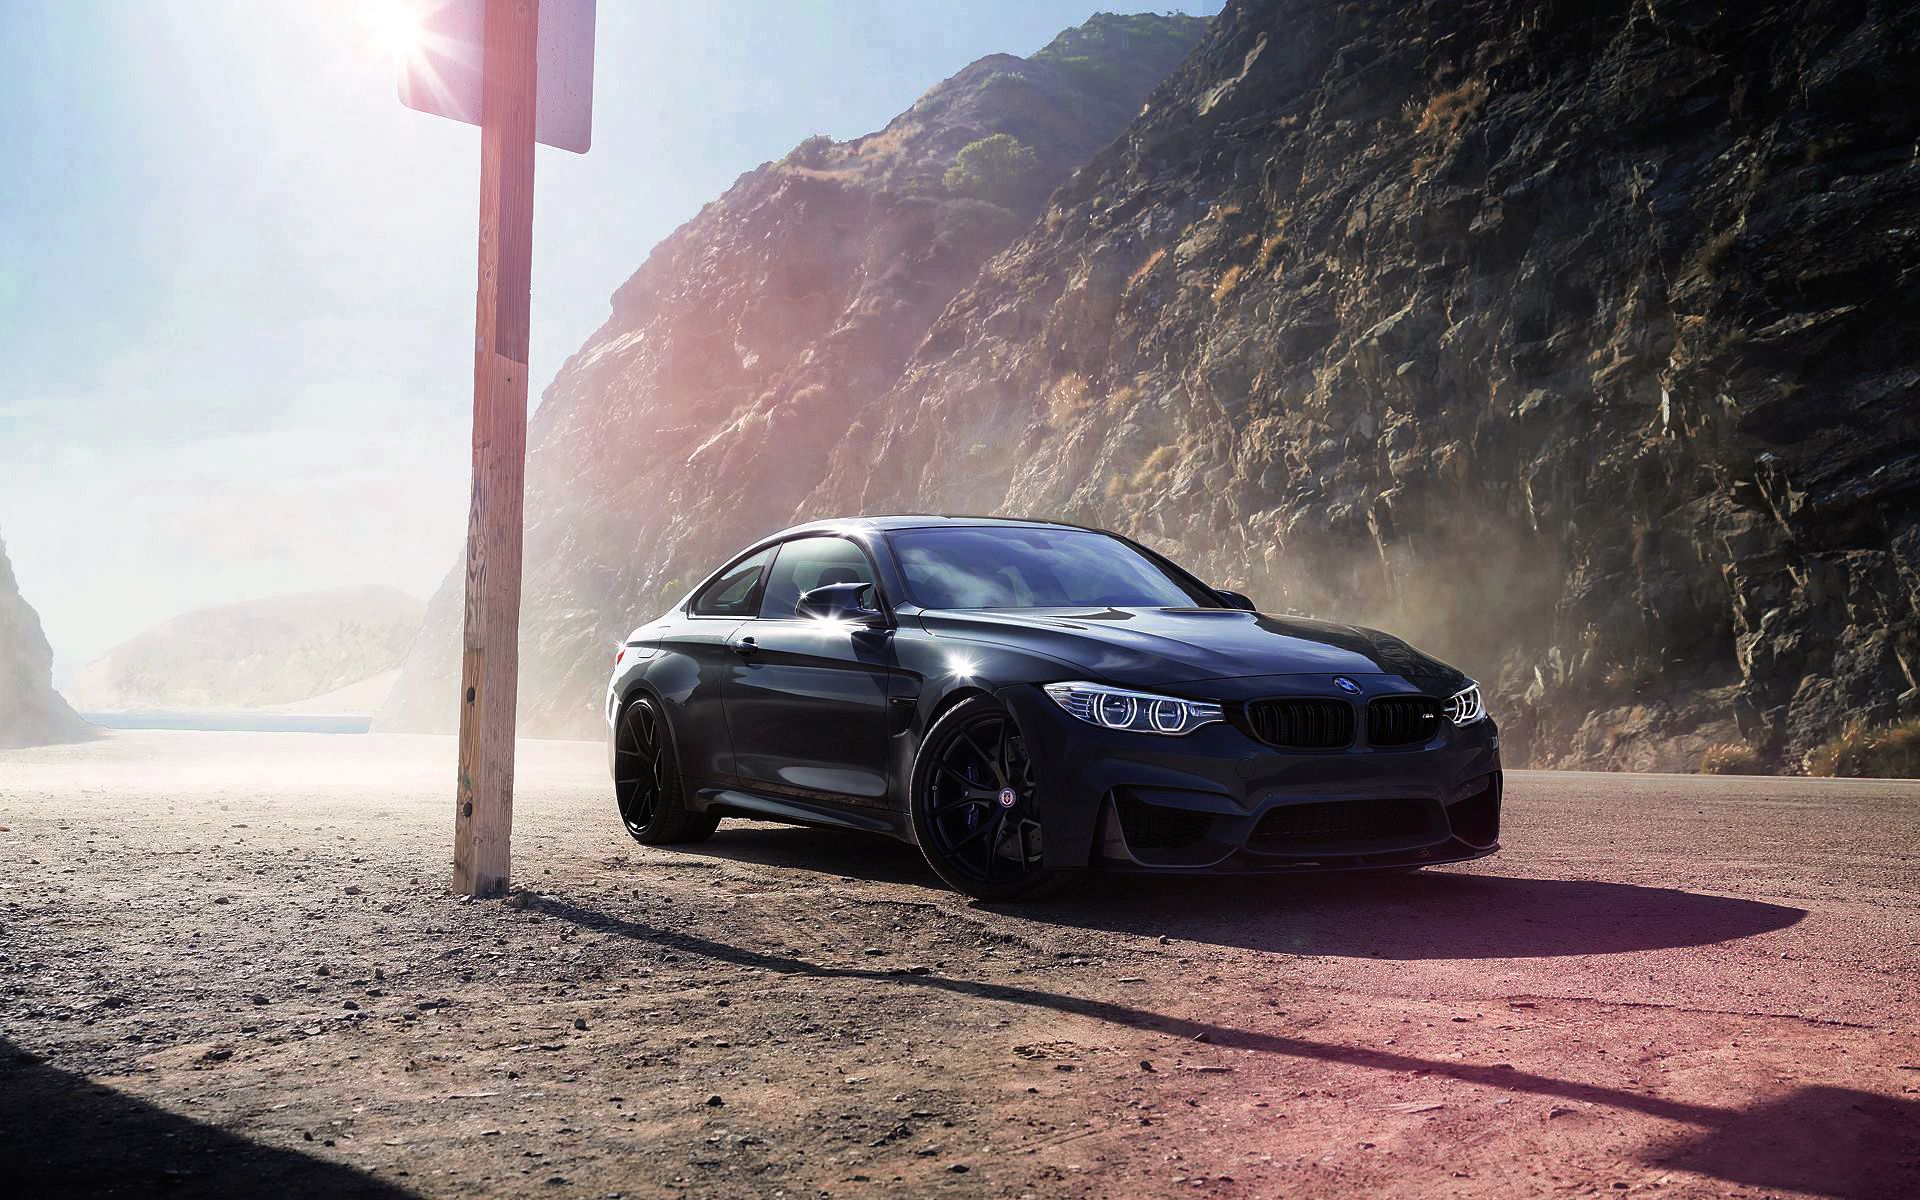 51 Best Free 4k Bmw Wallpapers Wallpaperaccess